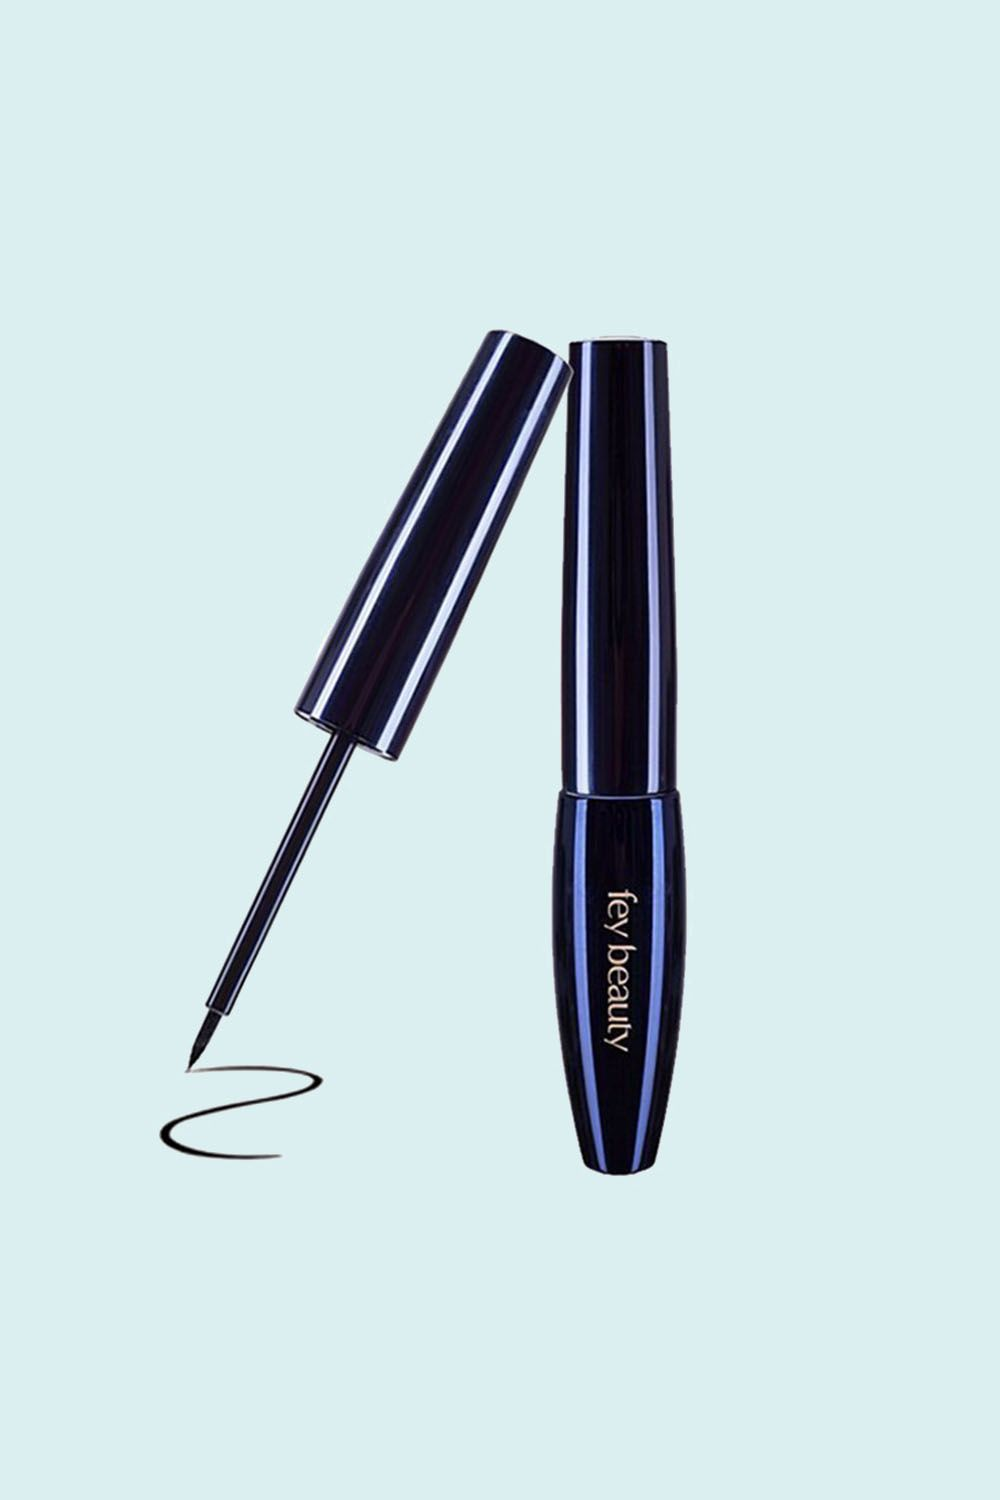 "<p>This innovative liquid liner not only goes on smooth and ultra intense, but it's waterproof. The irony of the latter is that  it makes taking off your eye makeup at the end of the day a cinch, as you can literally just peel it off as opposed to having to scrub the pigment off. </p><p> Drasawee Waterproof Peel Off Eyeliner, $10.99; <a href=""http://bit.ly/2nnTrqN"" target=""_blank"" data-tracking-id=""recirc-text-link"">amazon.com</a>.<span class=""redactor-invisible-space"" data-verified=""redactor"" data-redactor-tag=""span"" data-redactor-class=""redactor-invisible-space""></span><br></p>"